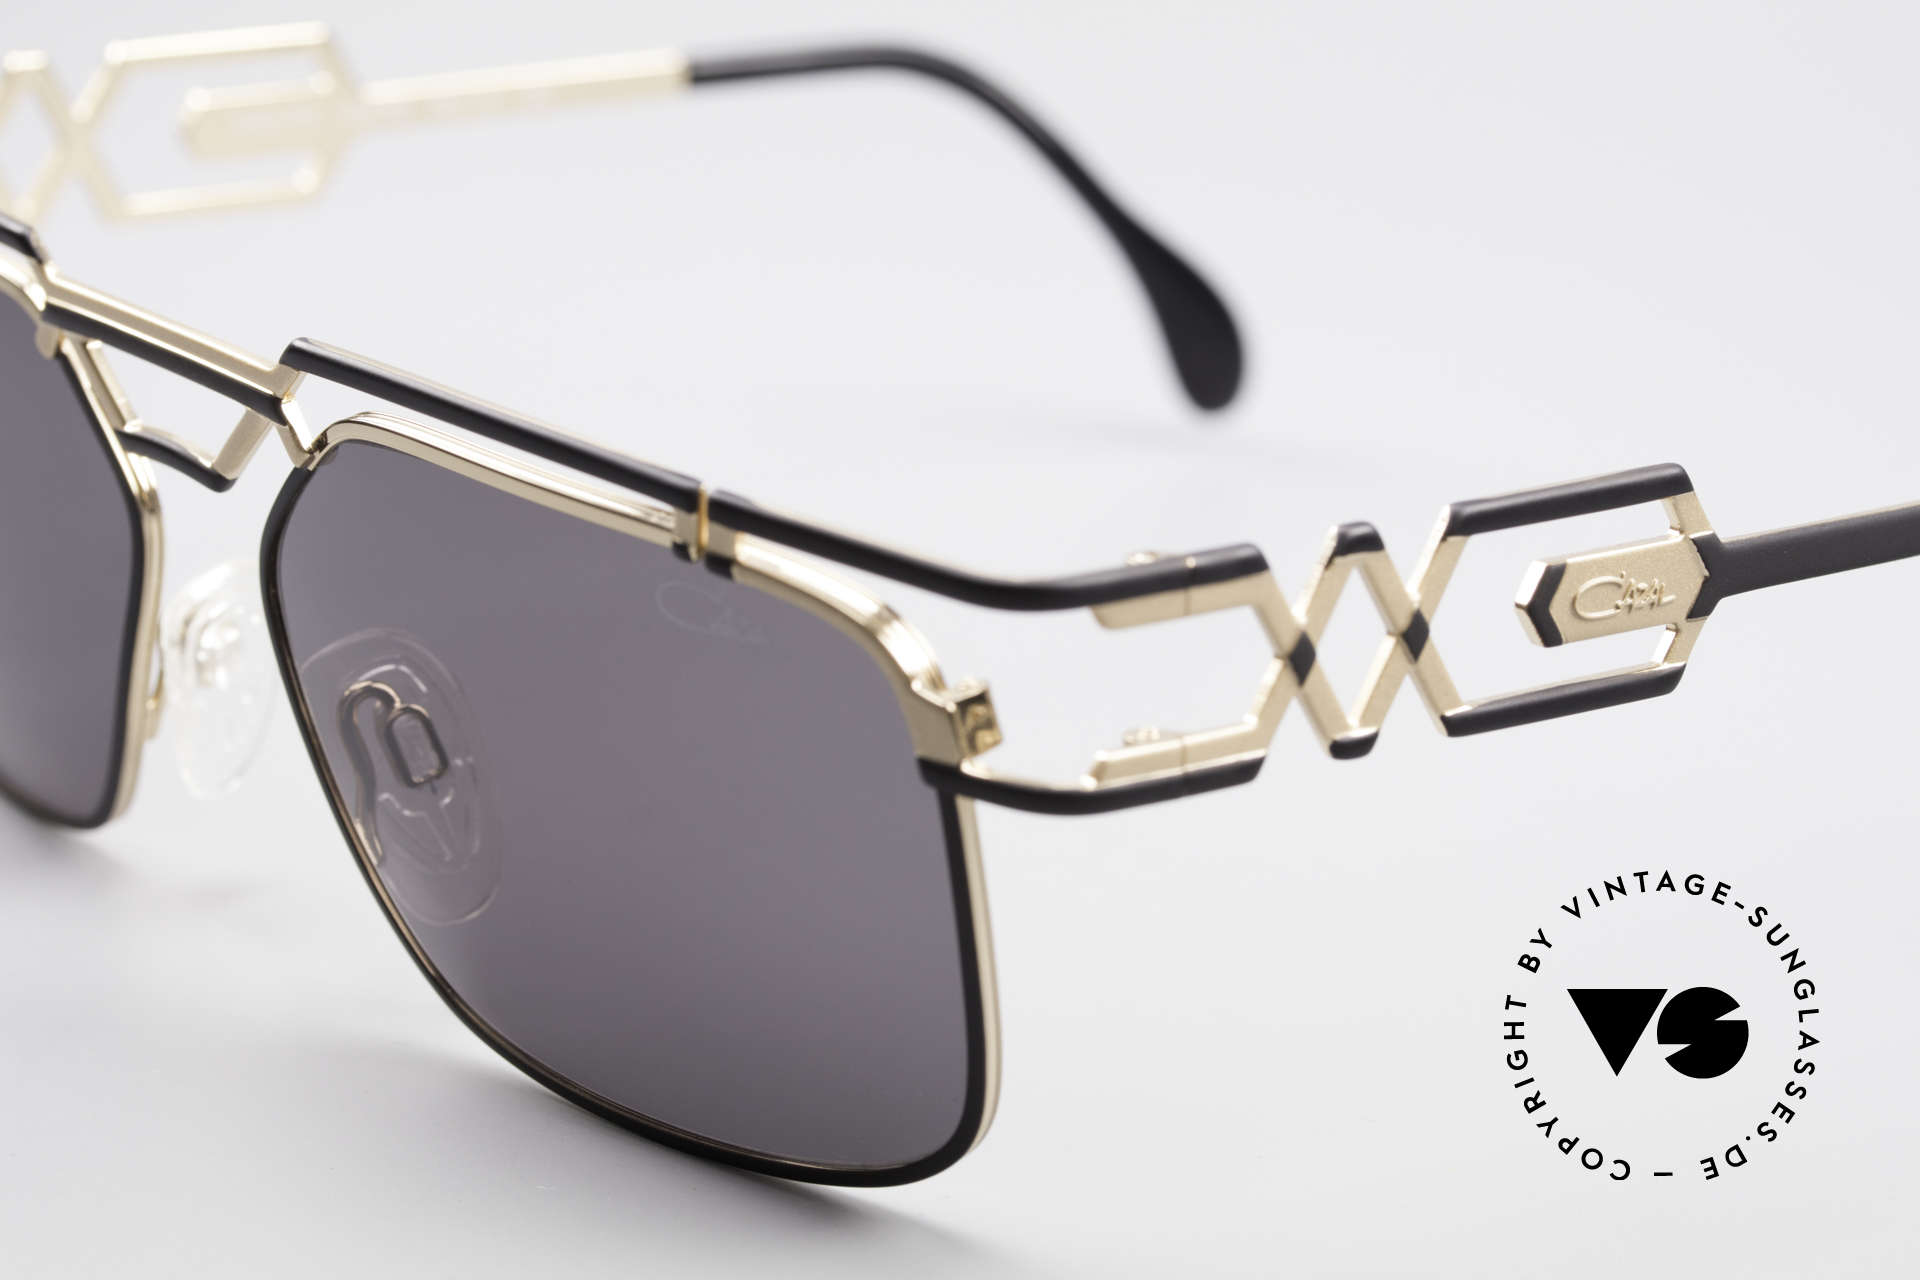 Cazal 973 90's Sunglasses Ladies Gents, new old stock (like all our rare VINTAGE Cazal eyewear), Made for Men and Women